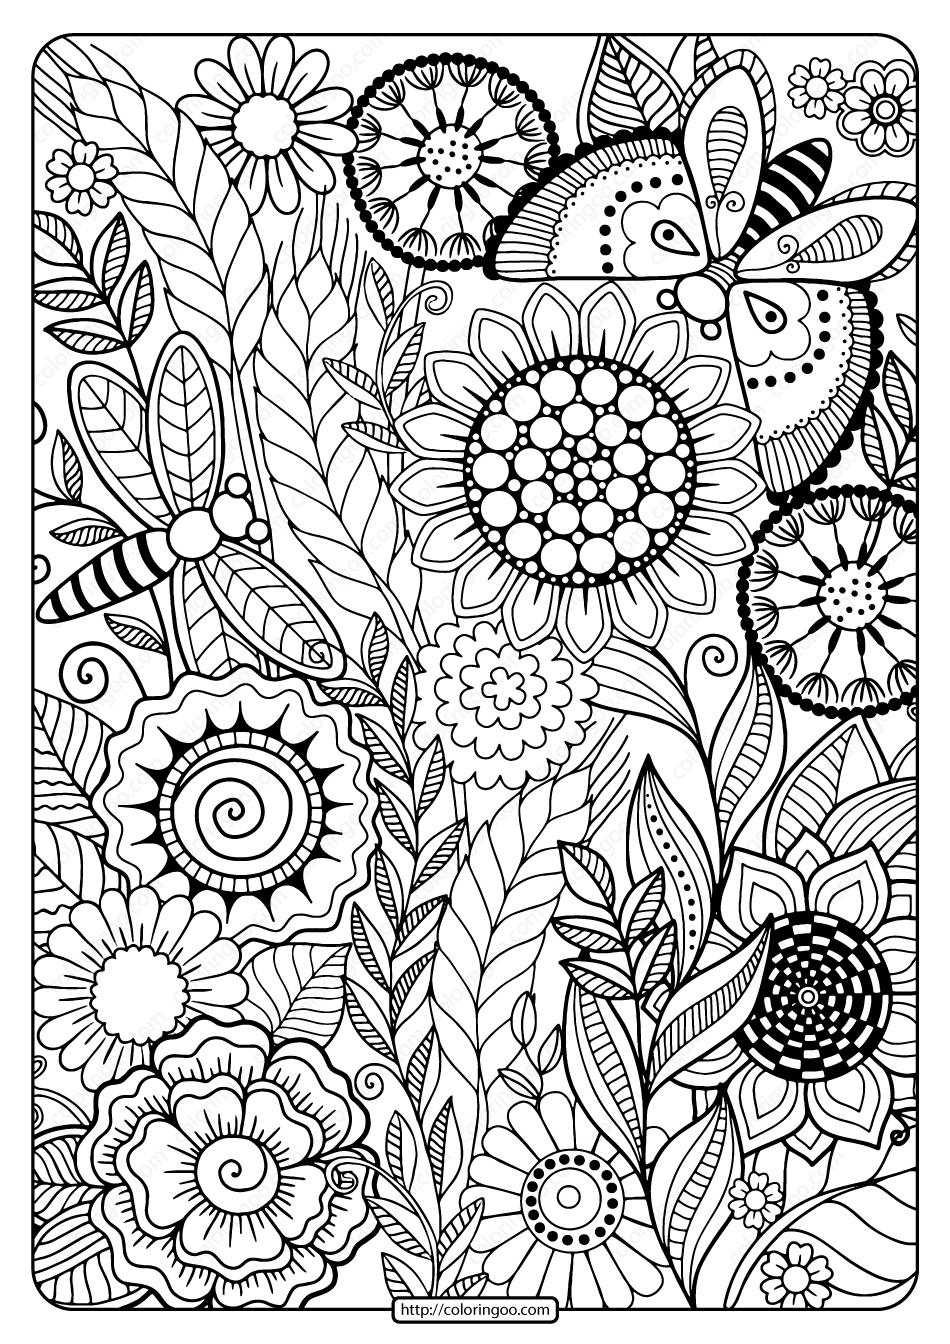 Printable Summer Flowers Pdf Coloring Page Summer Coloring Pages Mandala Coloring Pages Flower Coloring Pages